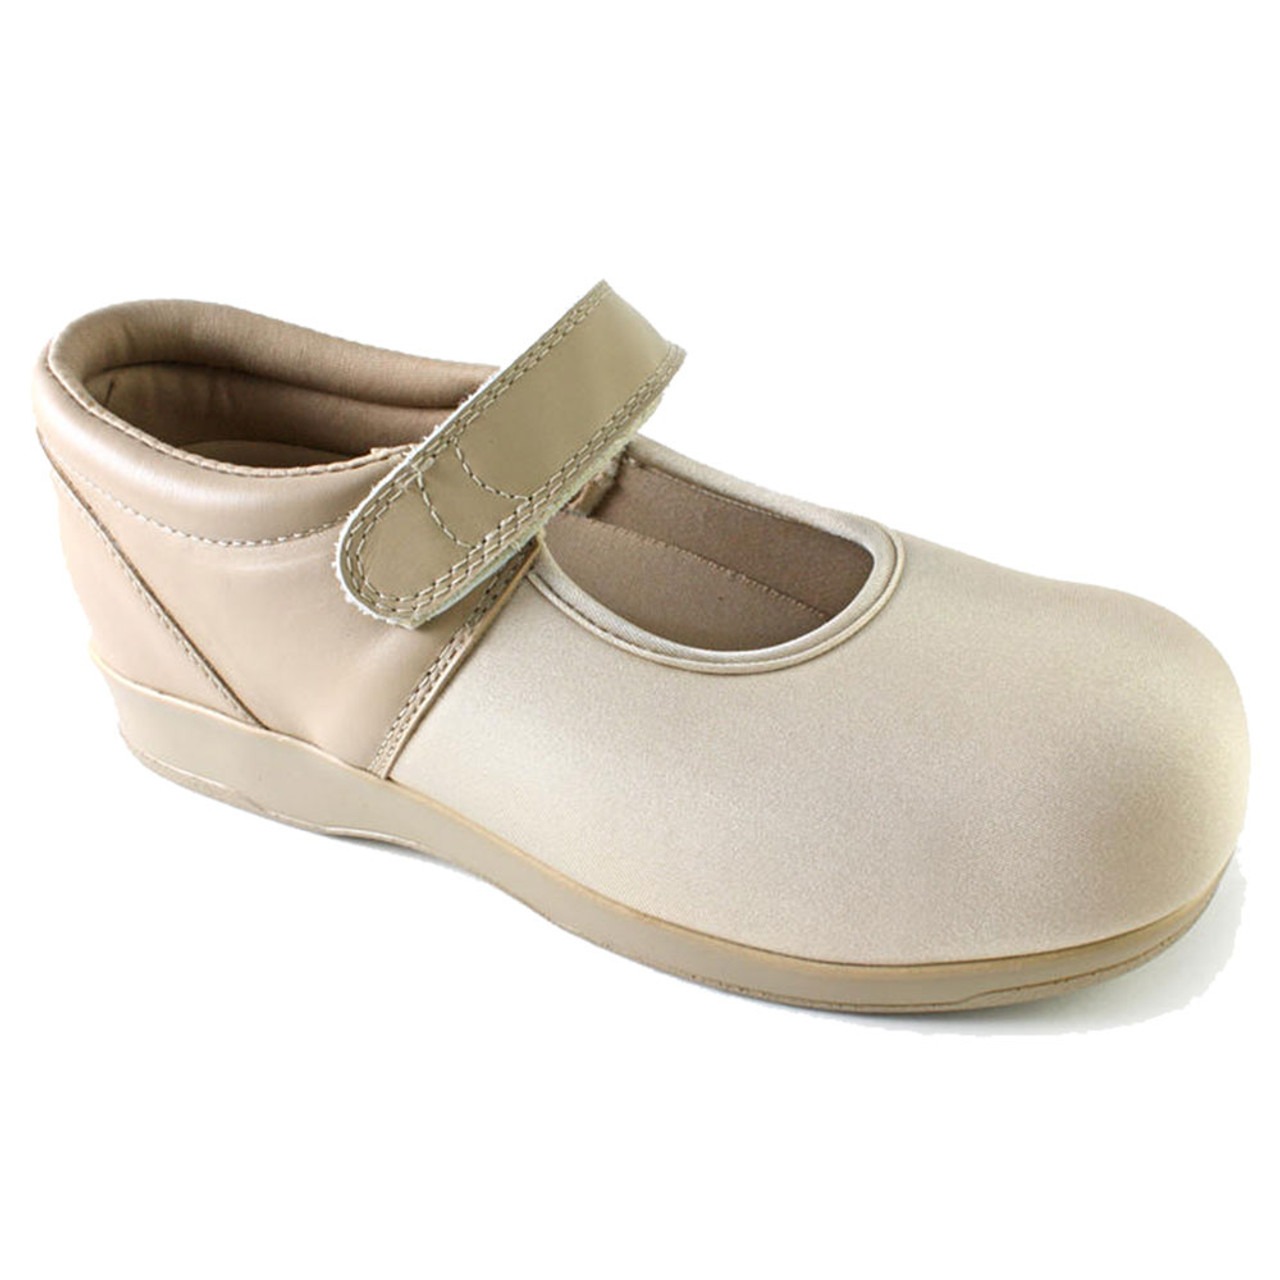 2f0fe7ac4184 Pedors Mary Jane Stretch Orthopedic Shoes